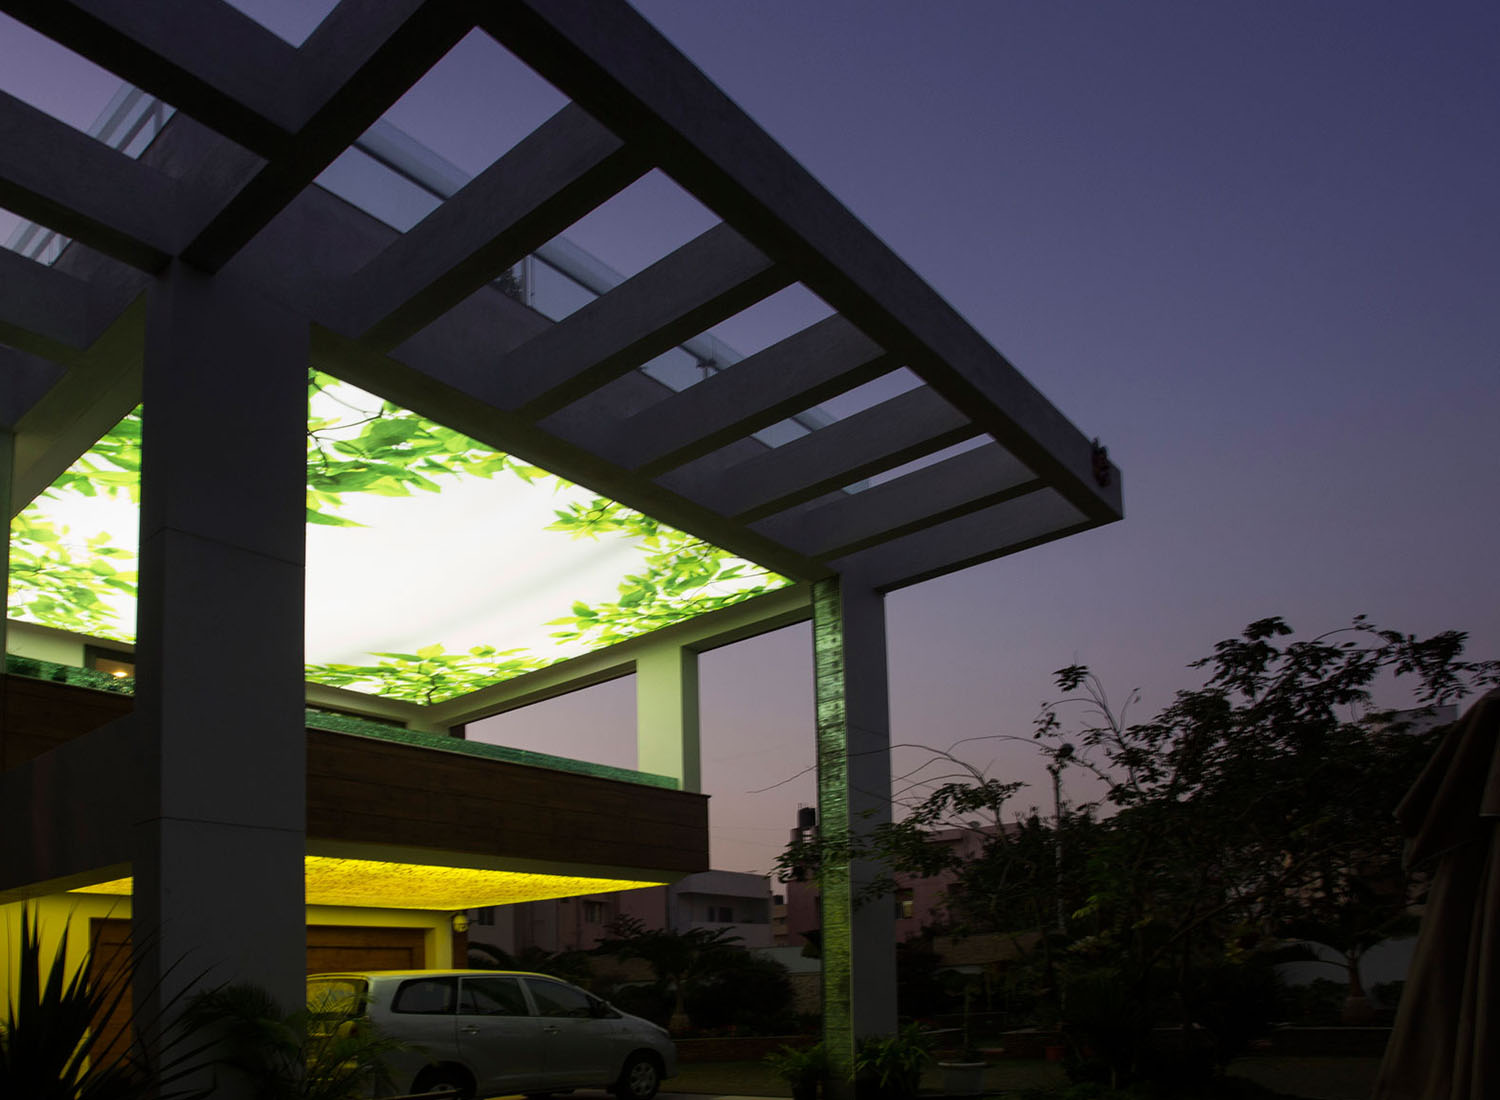 Stretch Ceiling Printed Translucent with Backlighting in Residence - Residential - Chennai